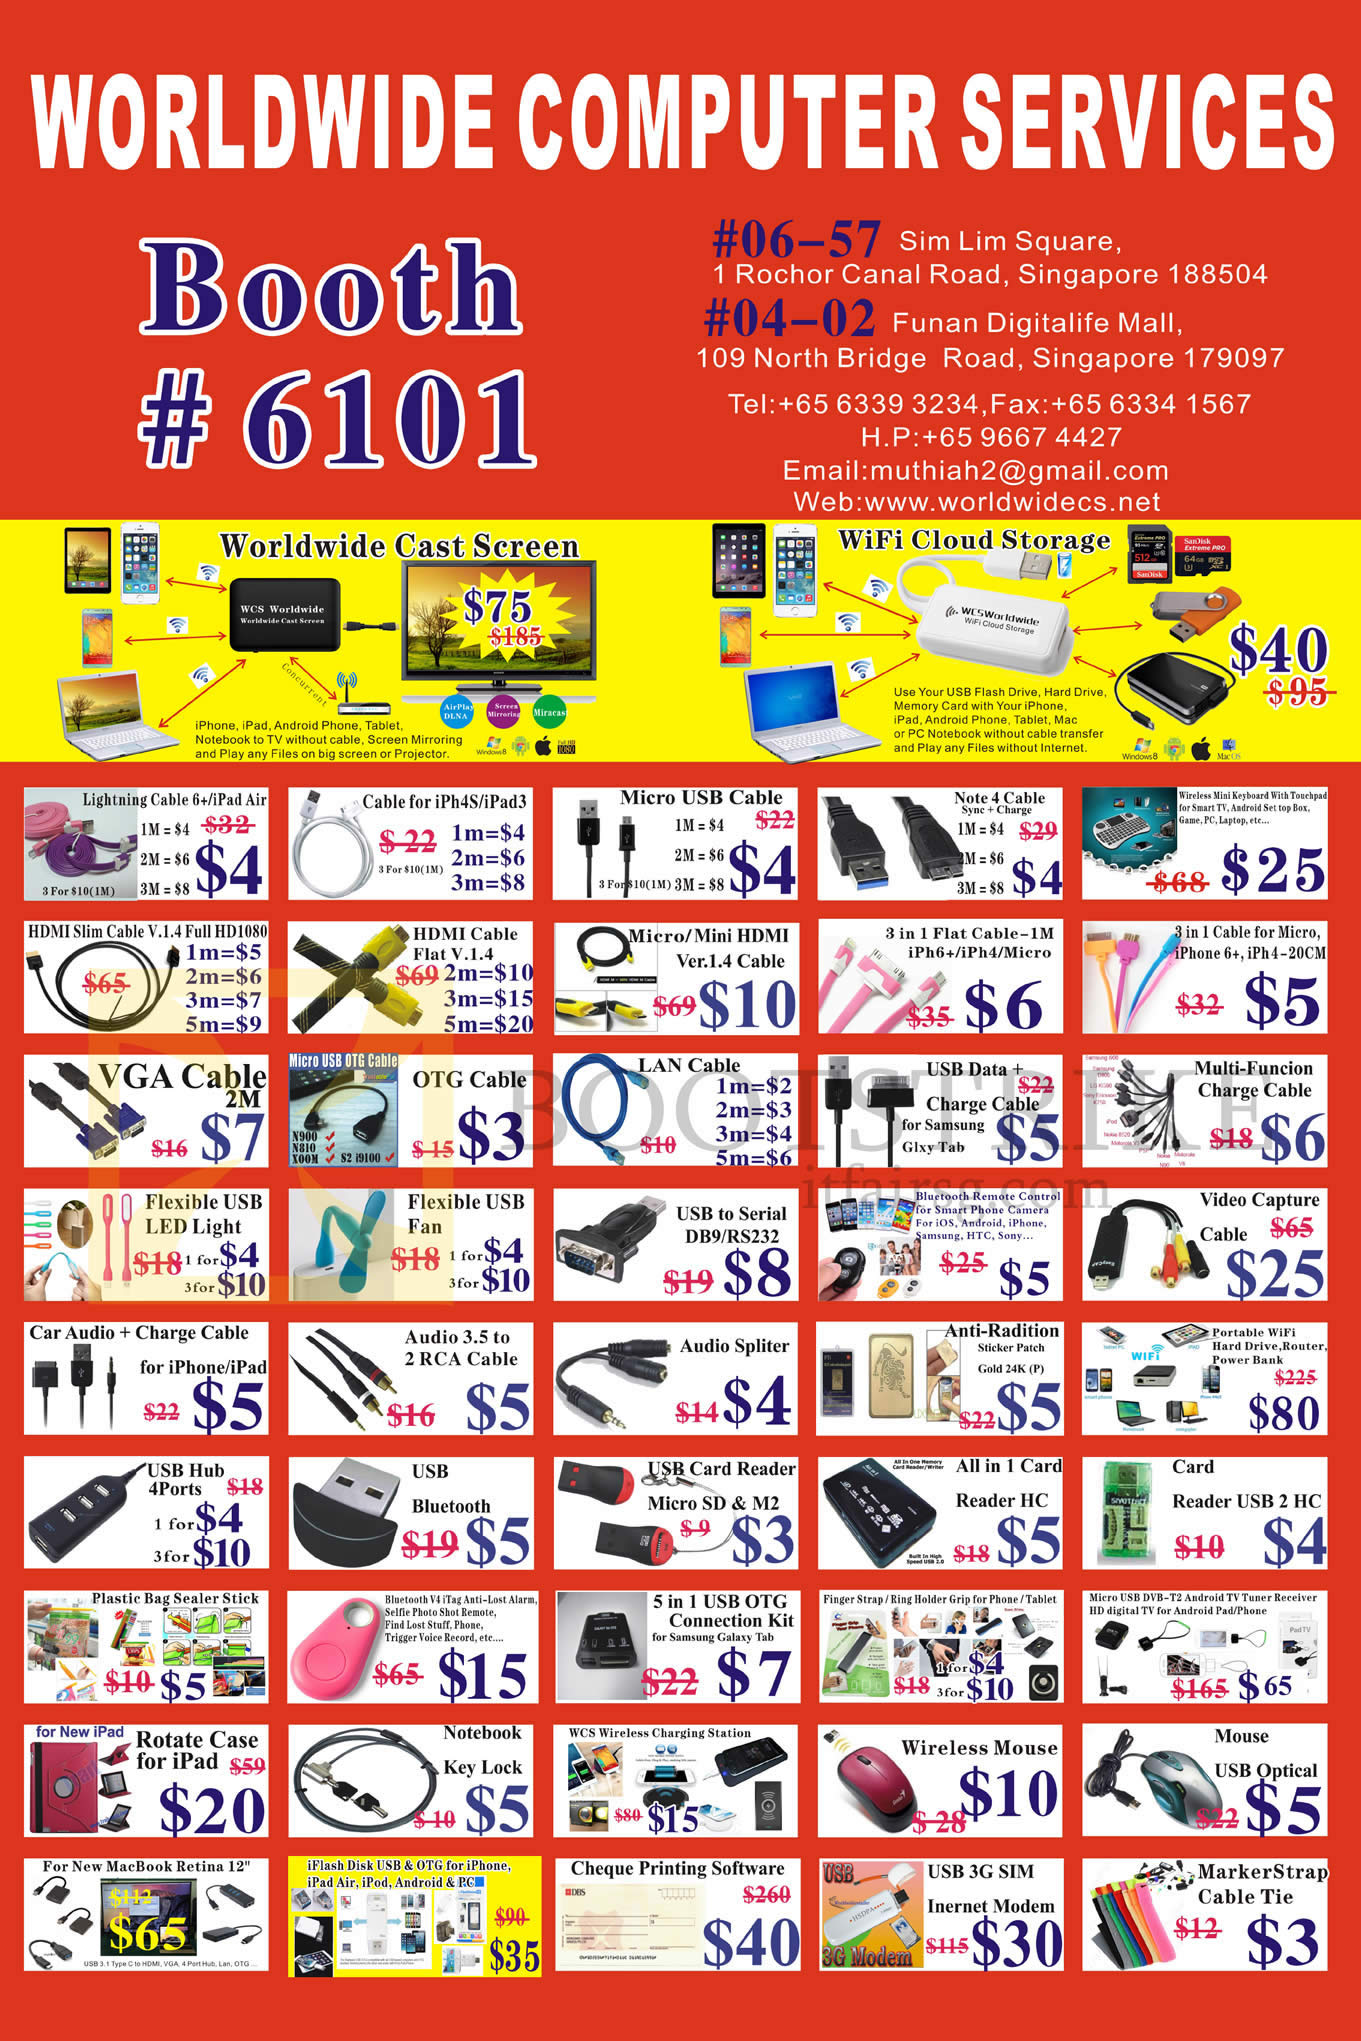 COMEX 2016 price list image brochure of Worldwide Computer Accessories Cable, Case, USB, Fan, LED Light, Adapter, Mouse, 3G Modem